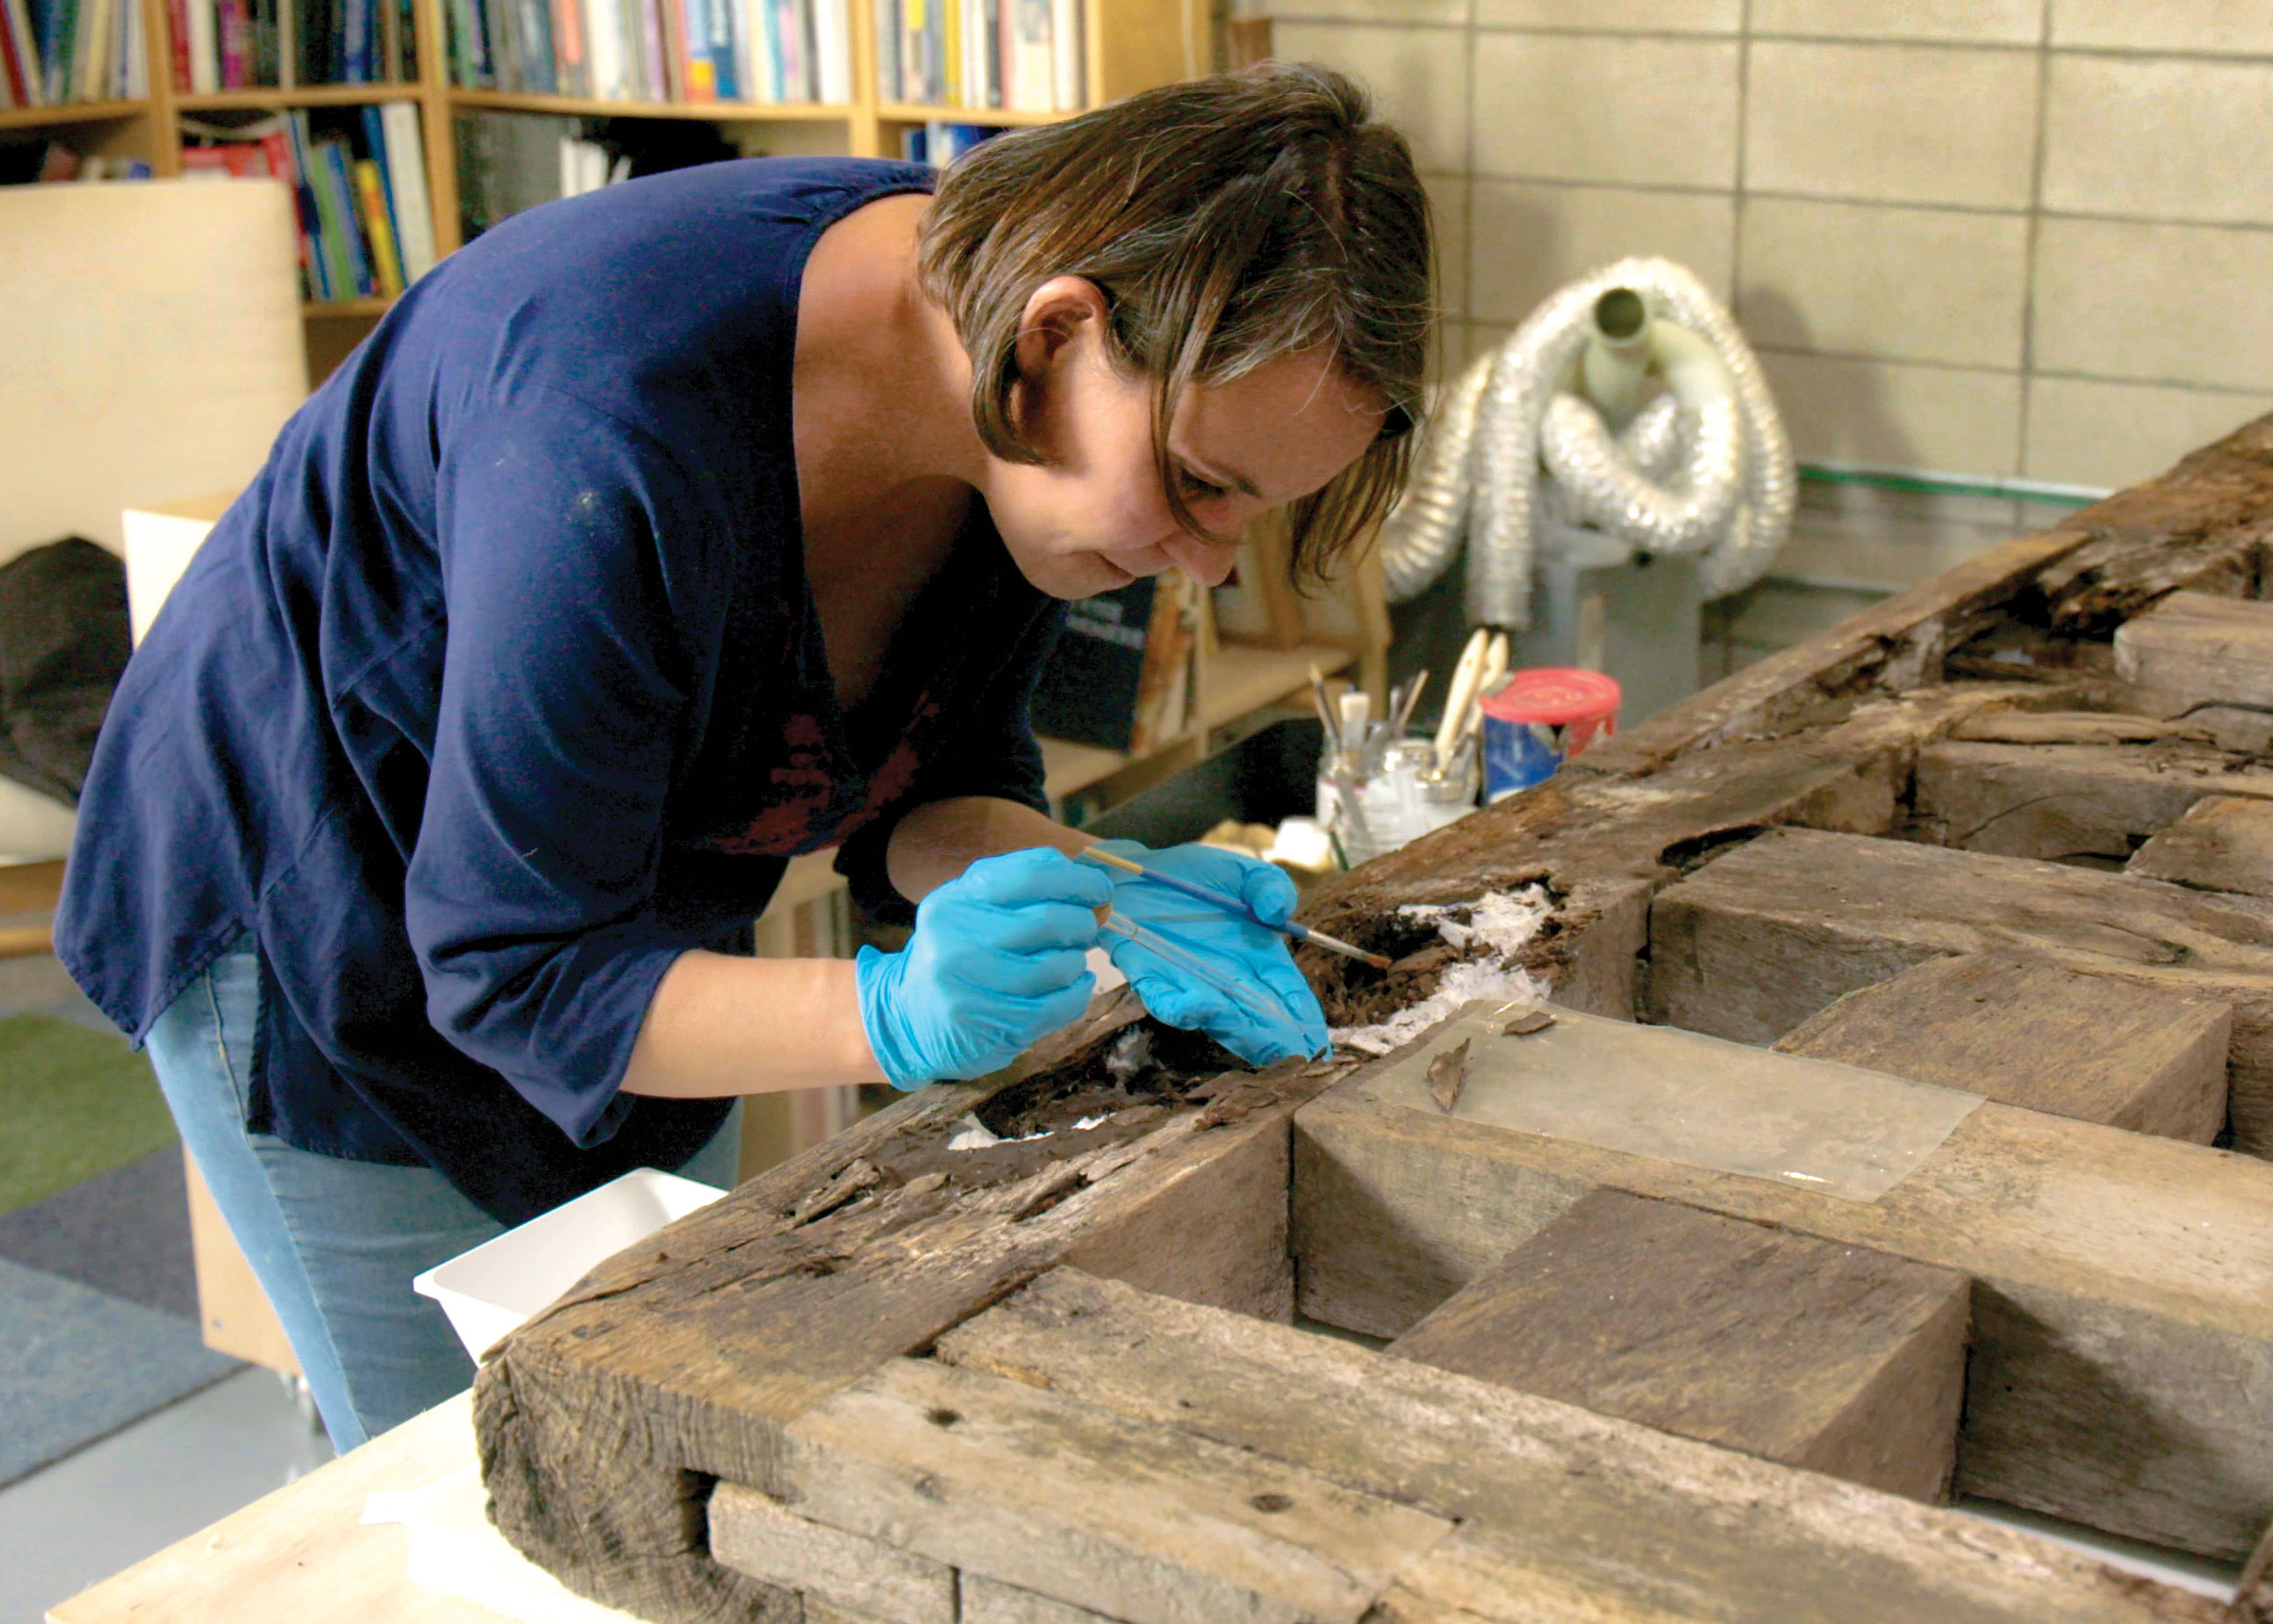 Conservator Catherine Williams utilized handmade paper to restore the damaged half of a rare Spanish mission gate, allowing it to be stable enough for display in Becoming Texas, opening December 10 at the Bullock Museum.